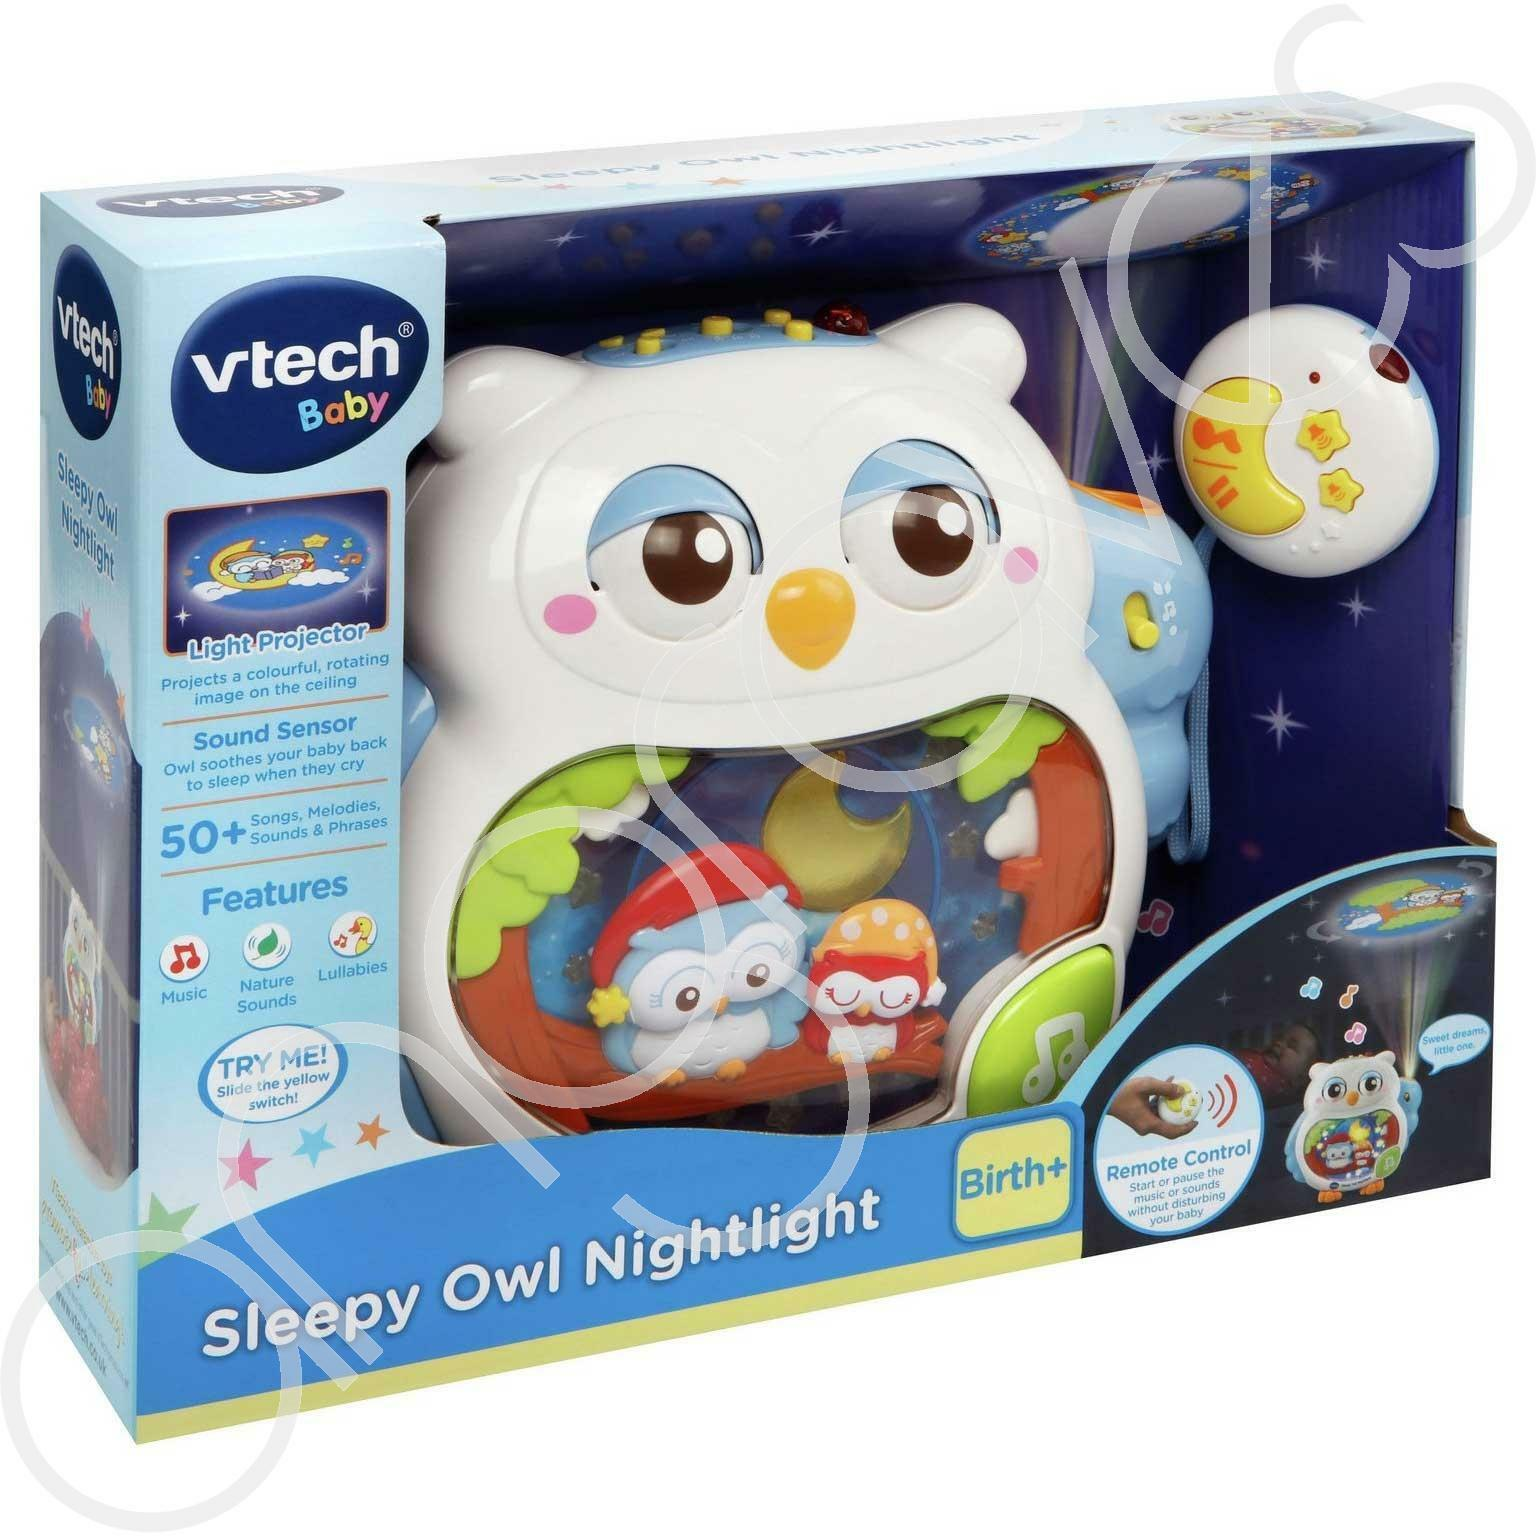 VTech Sleepy Owl Nightlight Cot Soother Baby Lullaby Night Light